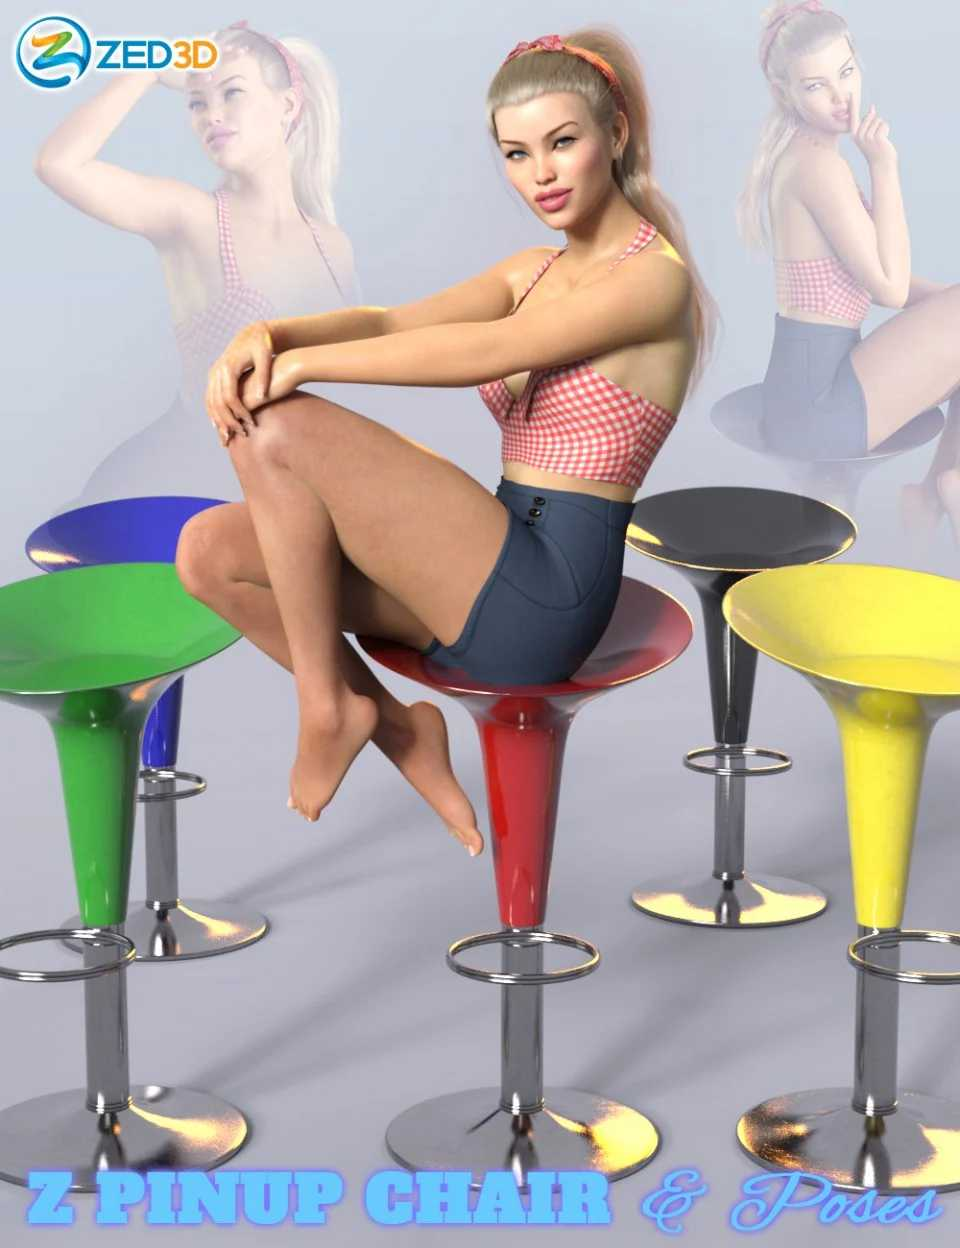 Z Pinup Chair and Poses